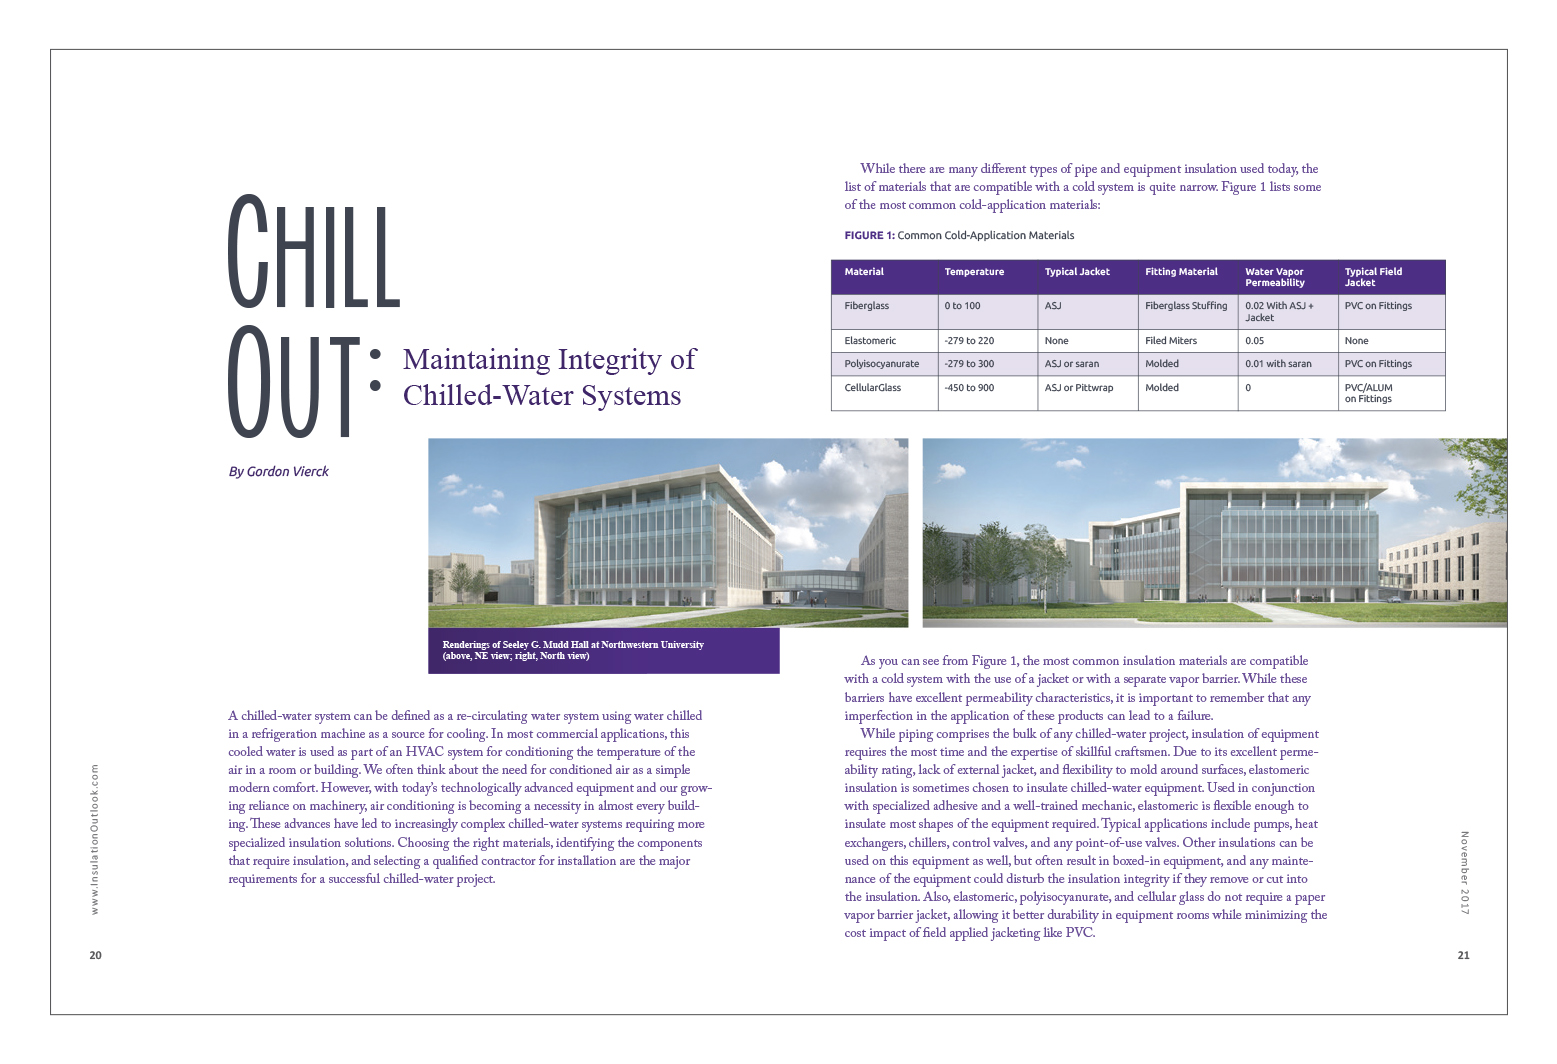 Chill Out: Maintaining Integrity of Chilled-Water Systems